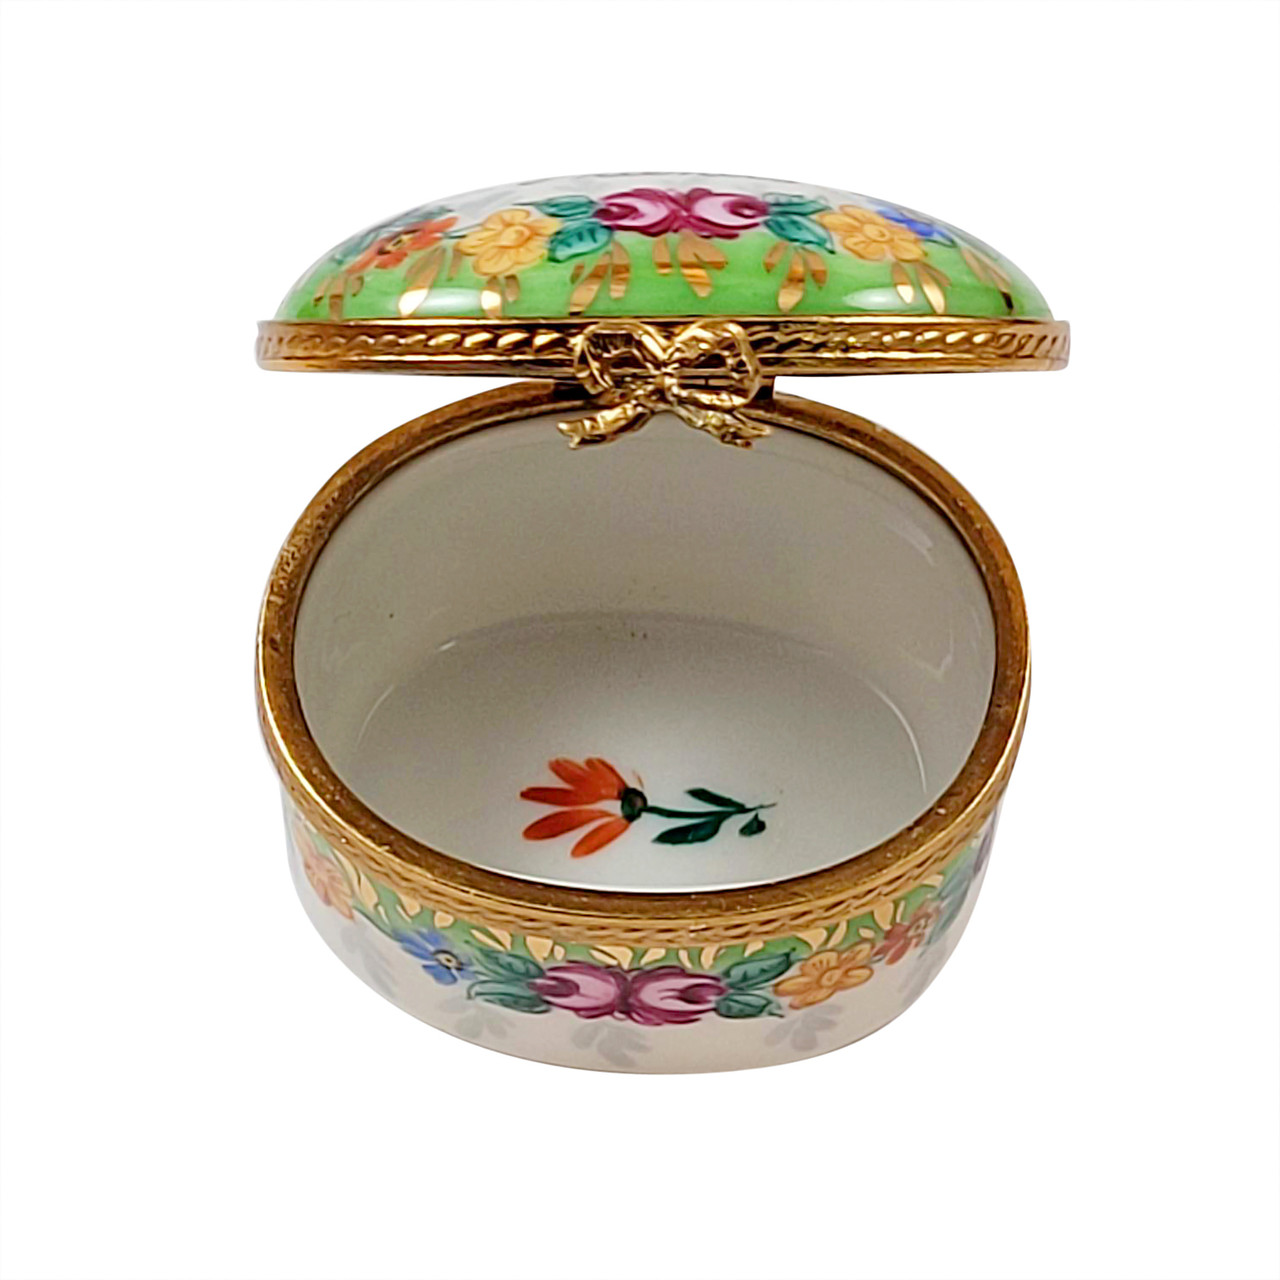 FOREVER FRIENDS with Flowers Limoges Box RO229